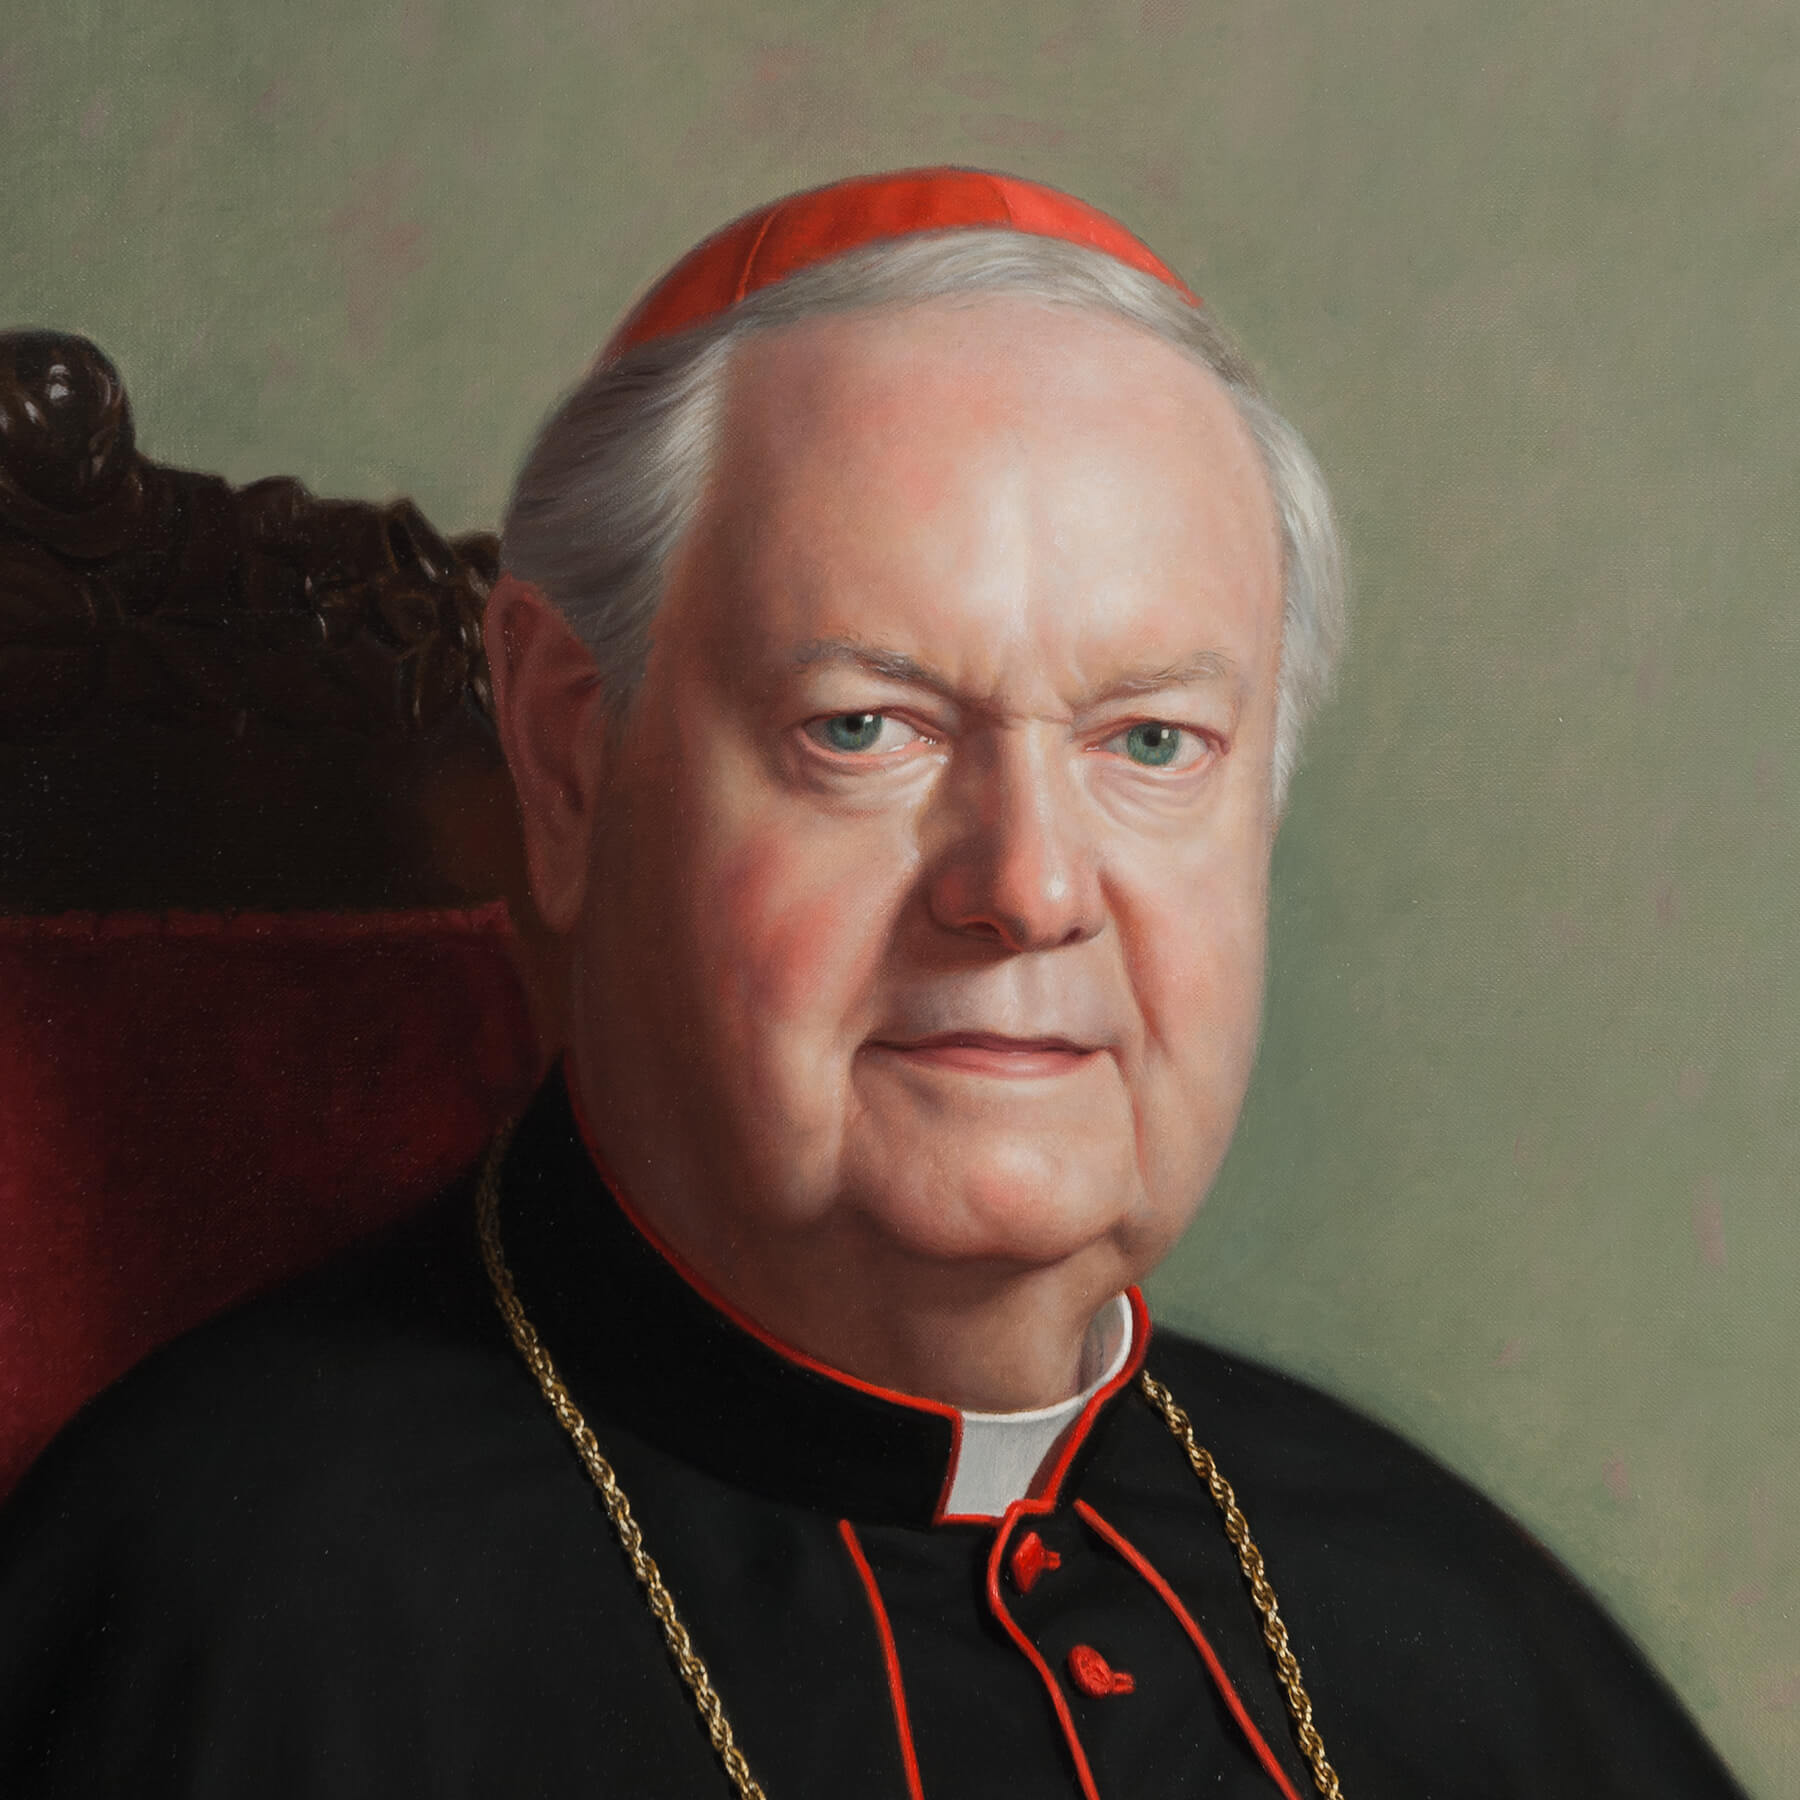 Face detail of Clergy for Commissioned Portrait Art